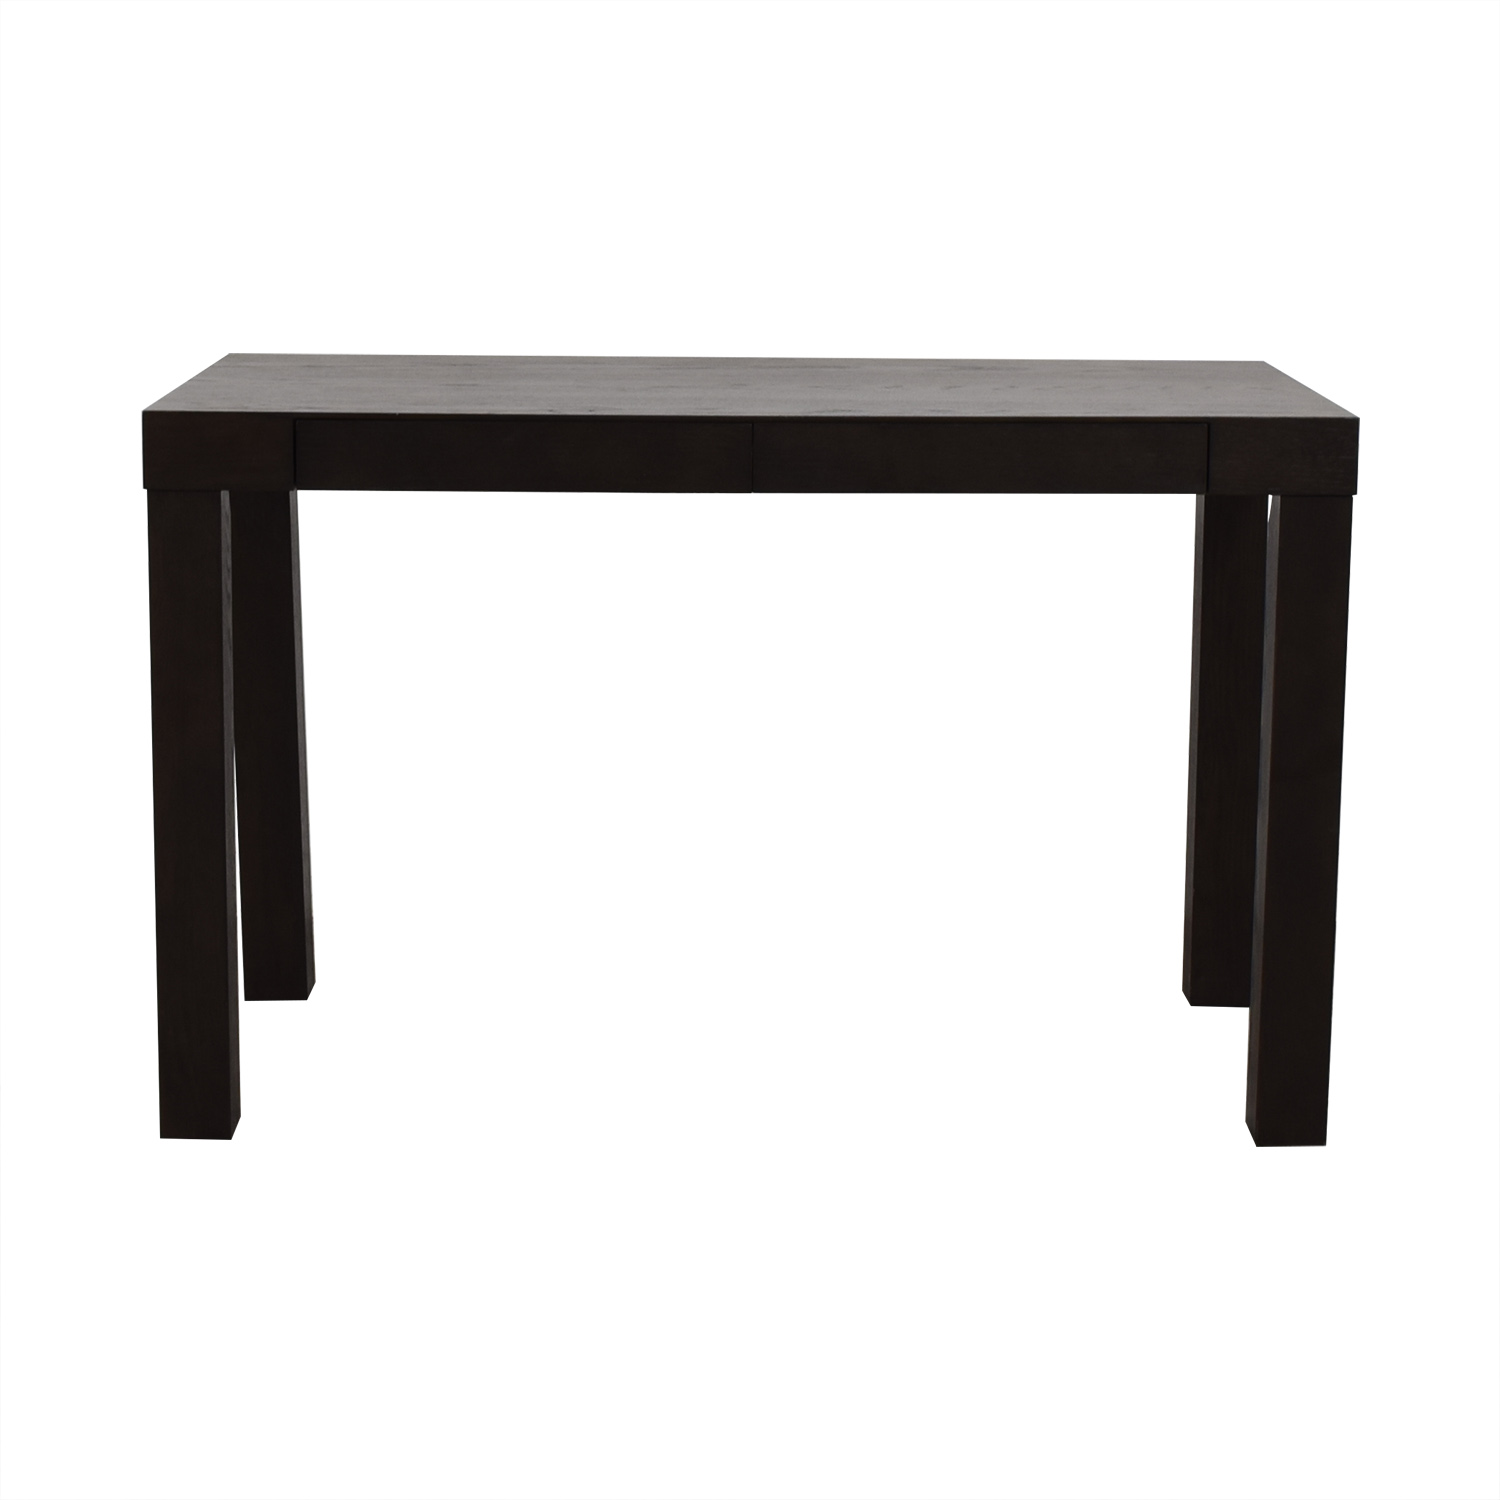 West Elm West Elm Parsons Wood Desk dimensions